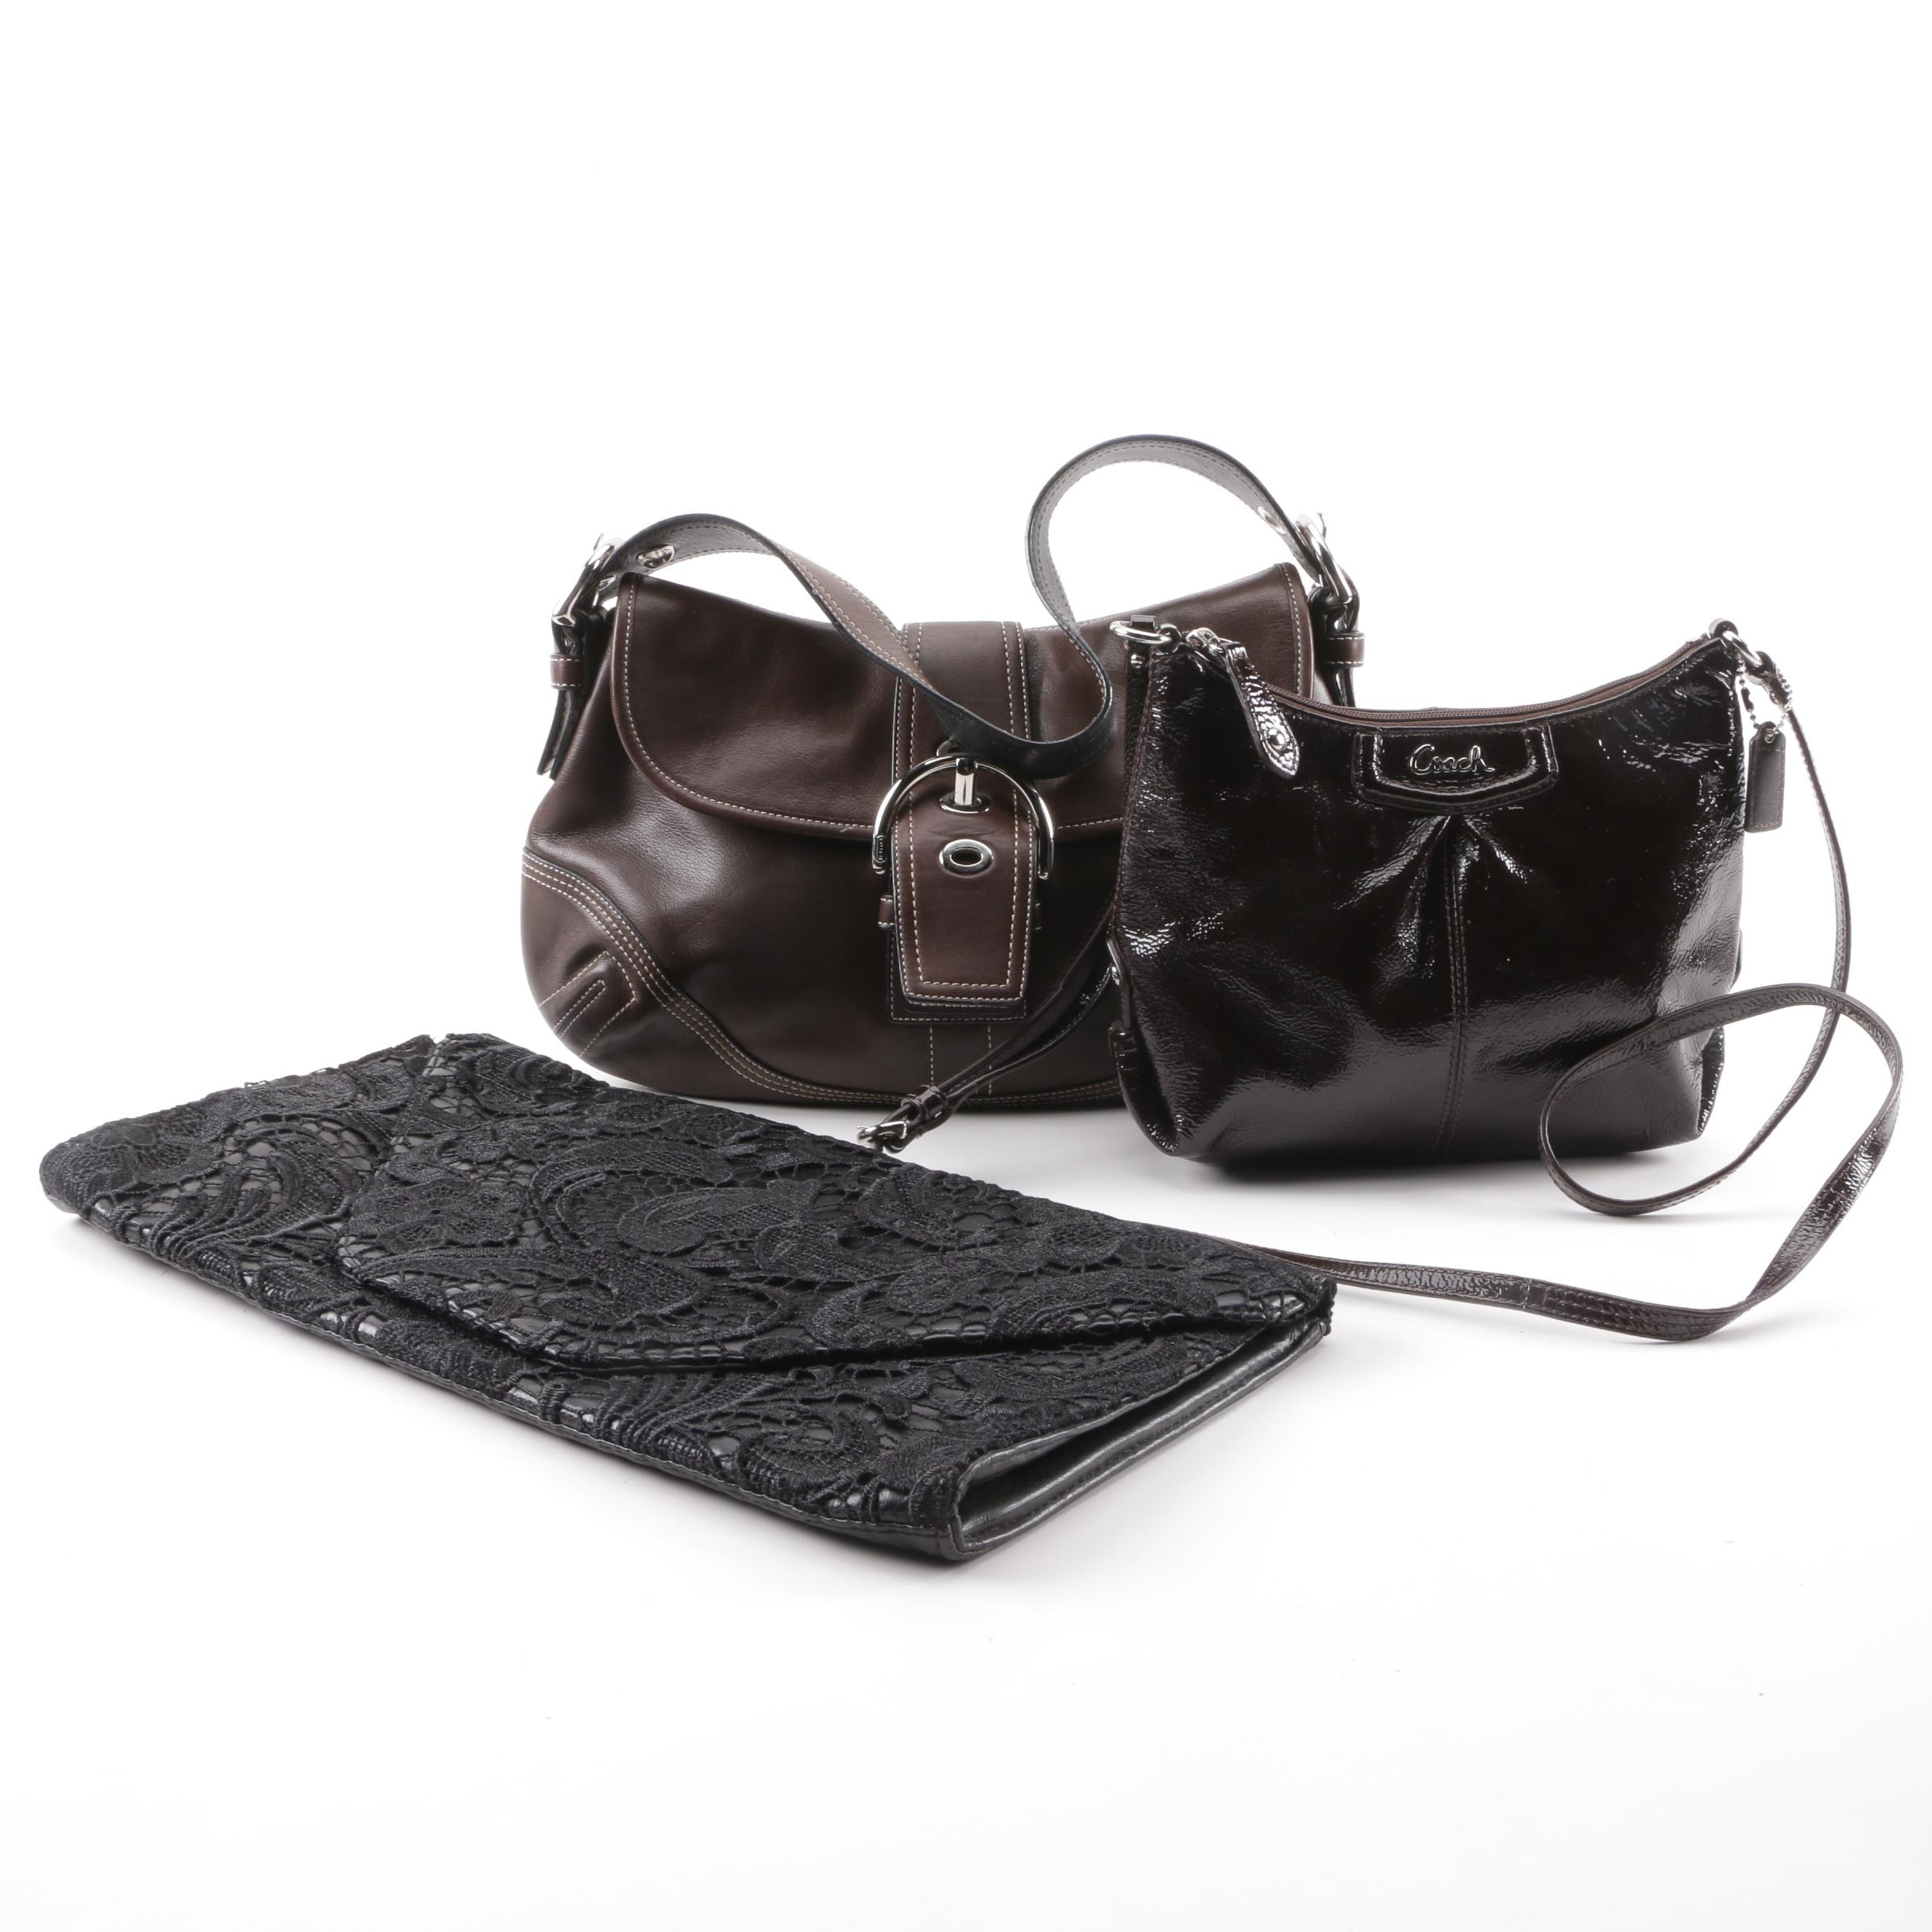 Coach Leather and Patent Leather Shoulder Bags and Jessica Simpson Lace Clutch